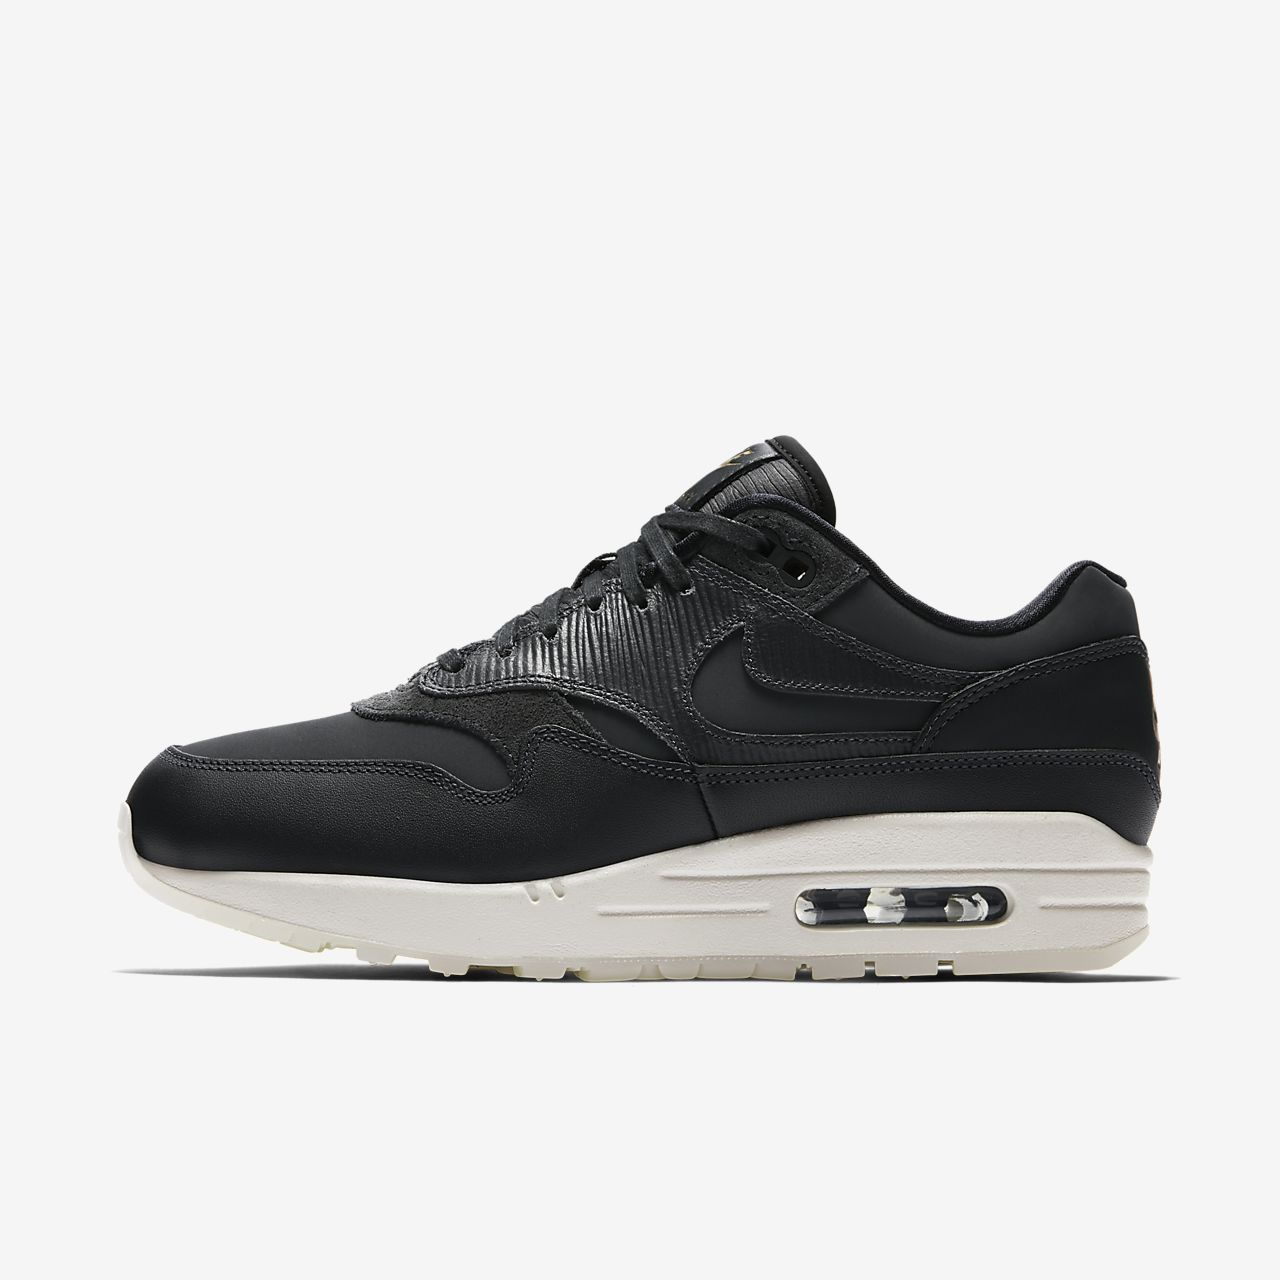 air max 1 premium sneaker nz